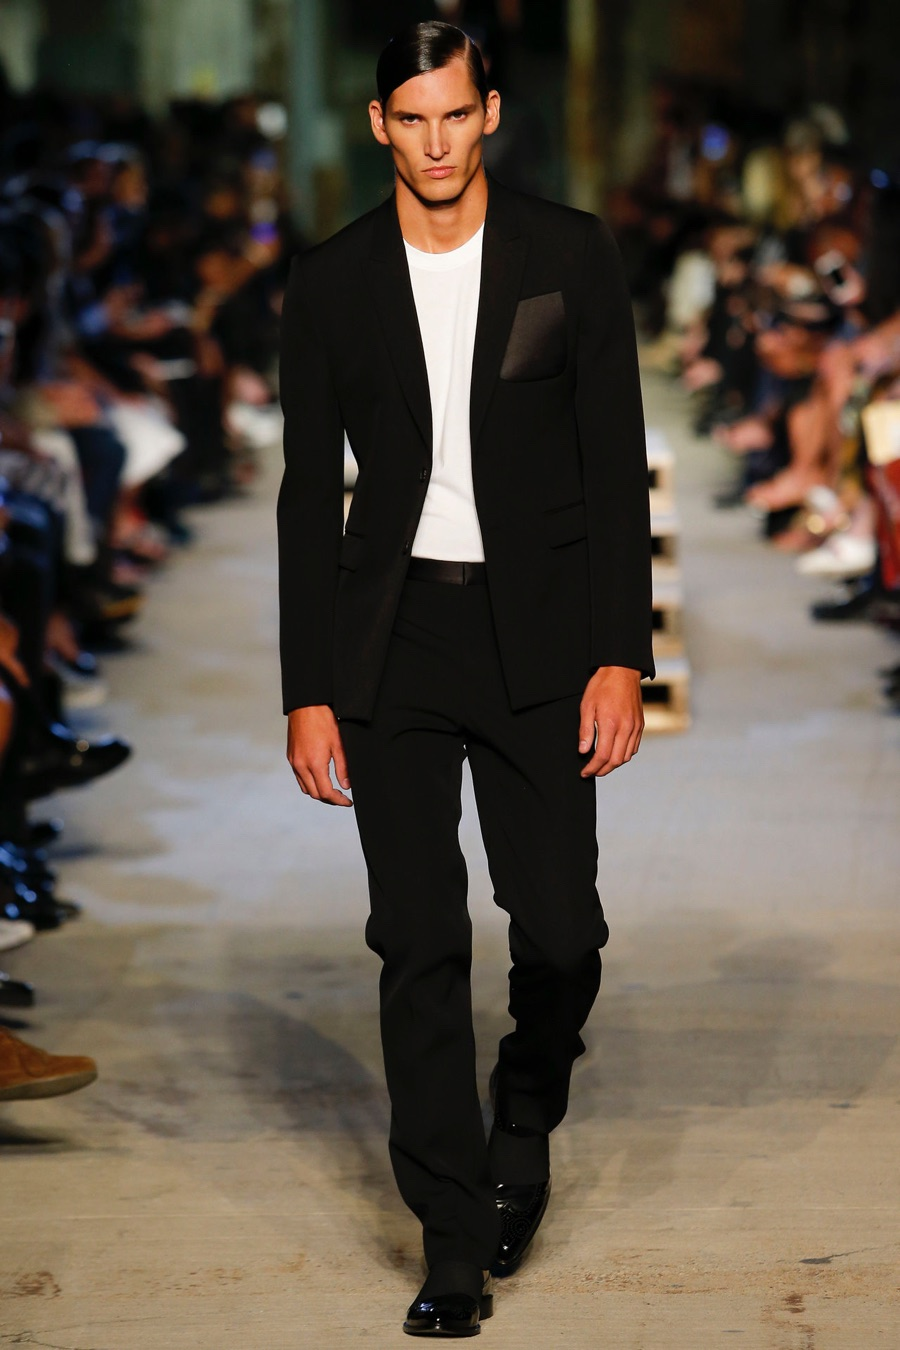 Givenchy Shows Spring/Summer 2016 Collection During New York Fashion Week